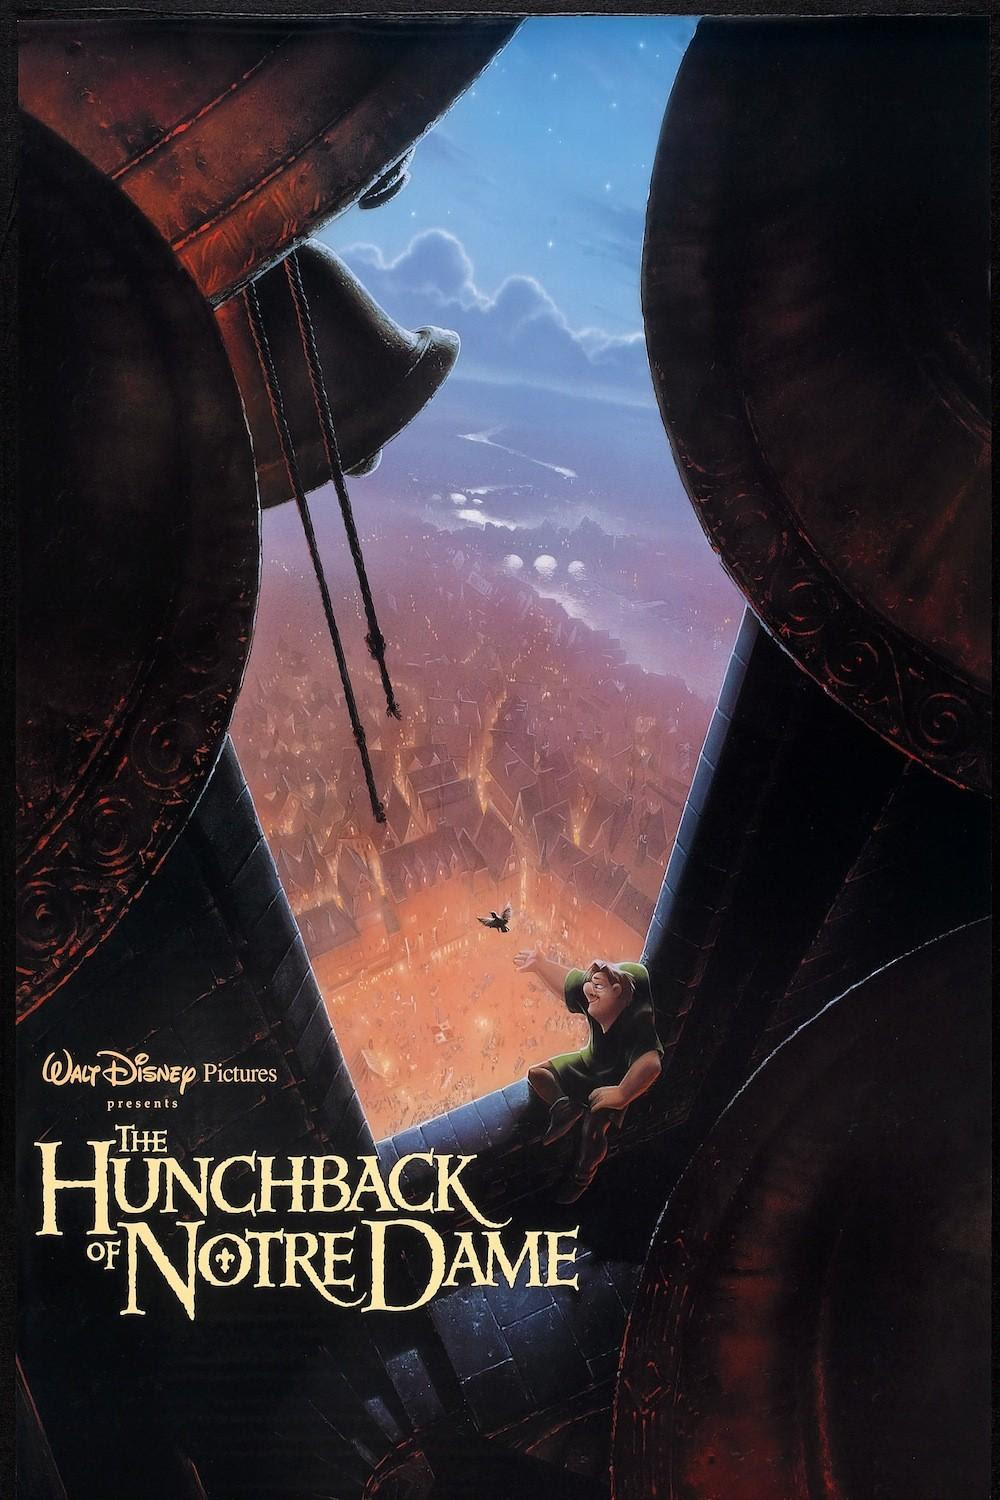 http://vignette4.wikia.nocookie.net/disney/images/a/a5/The_Hunchback_of_Notre_Dame-_1996.jpg/revision/latest?cb=20130420022954